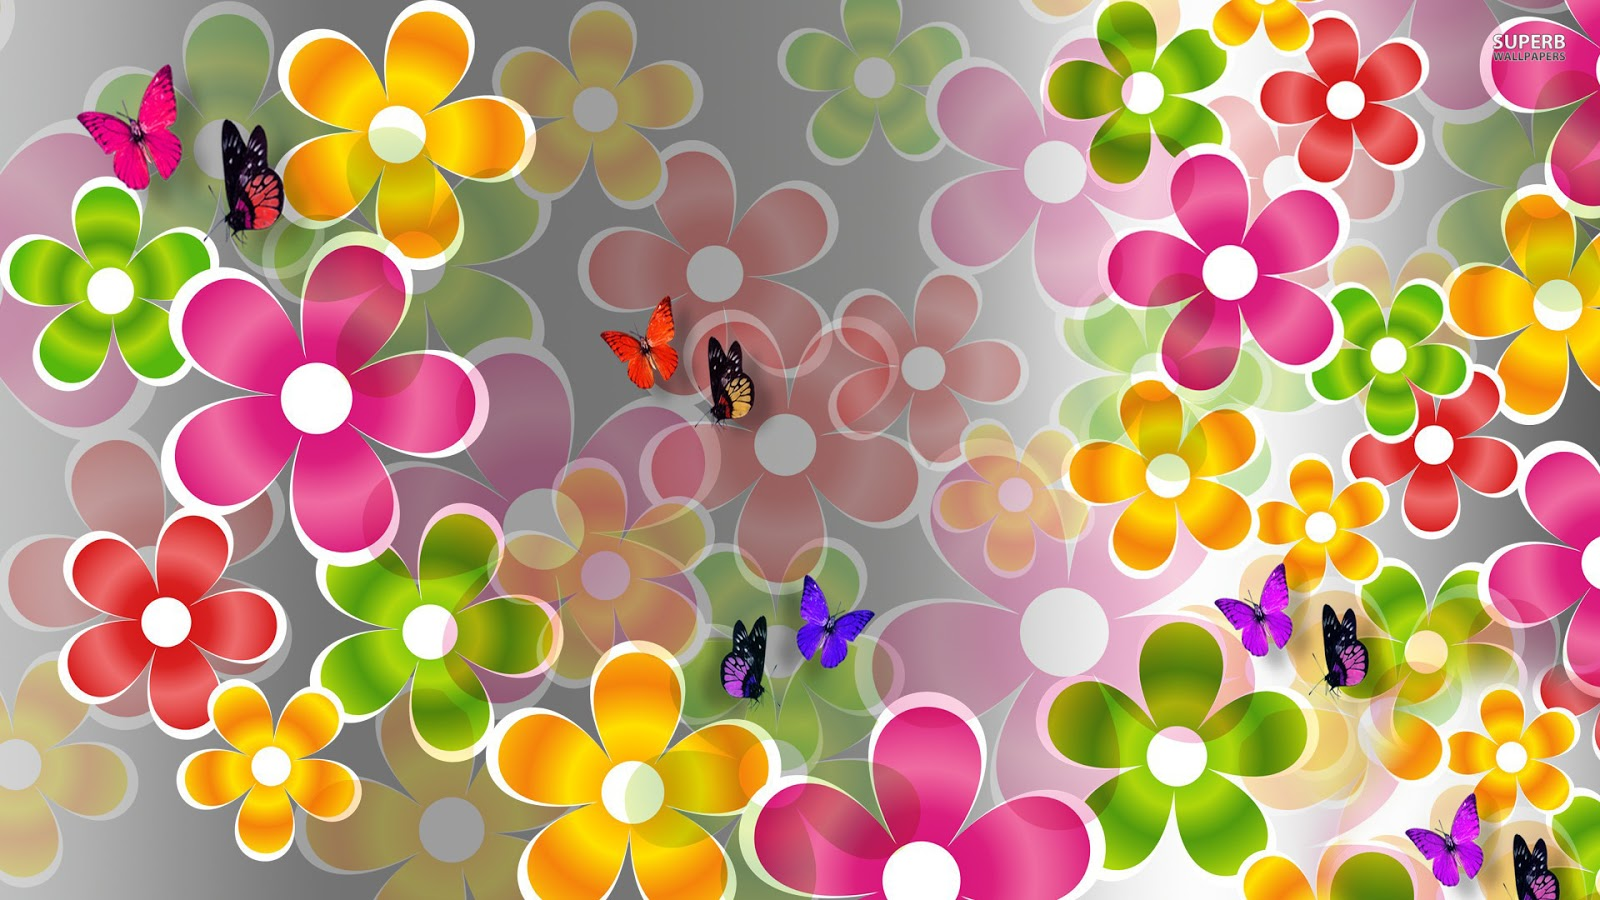 ImagesList com: Wallpapers with Butterflies 3